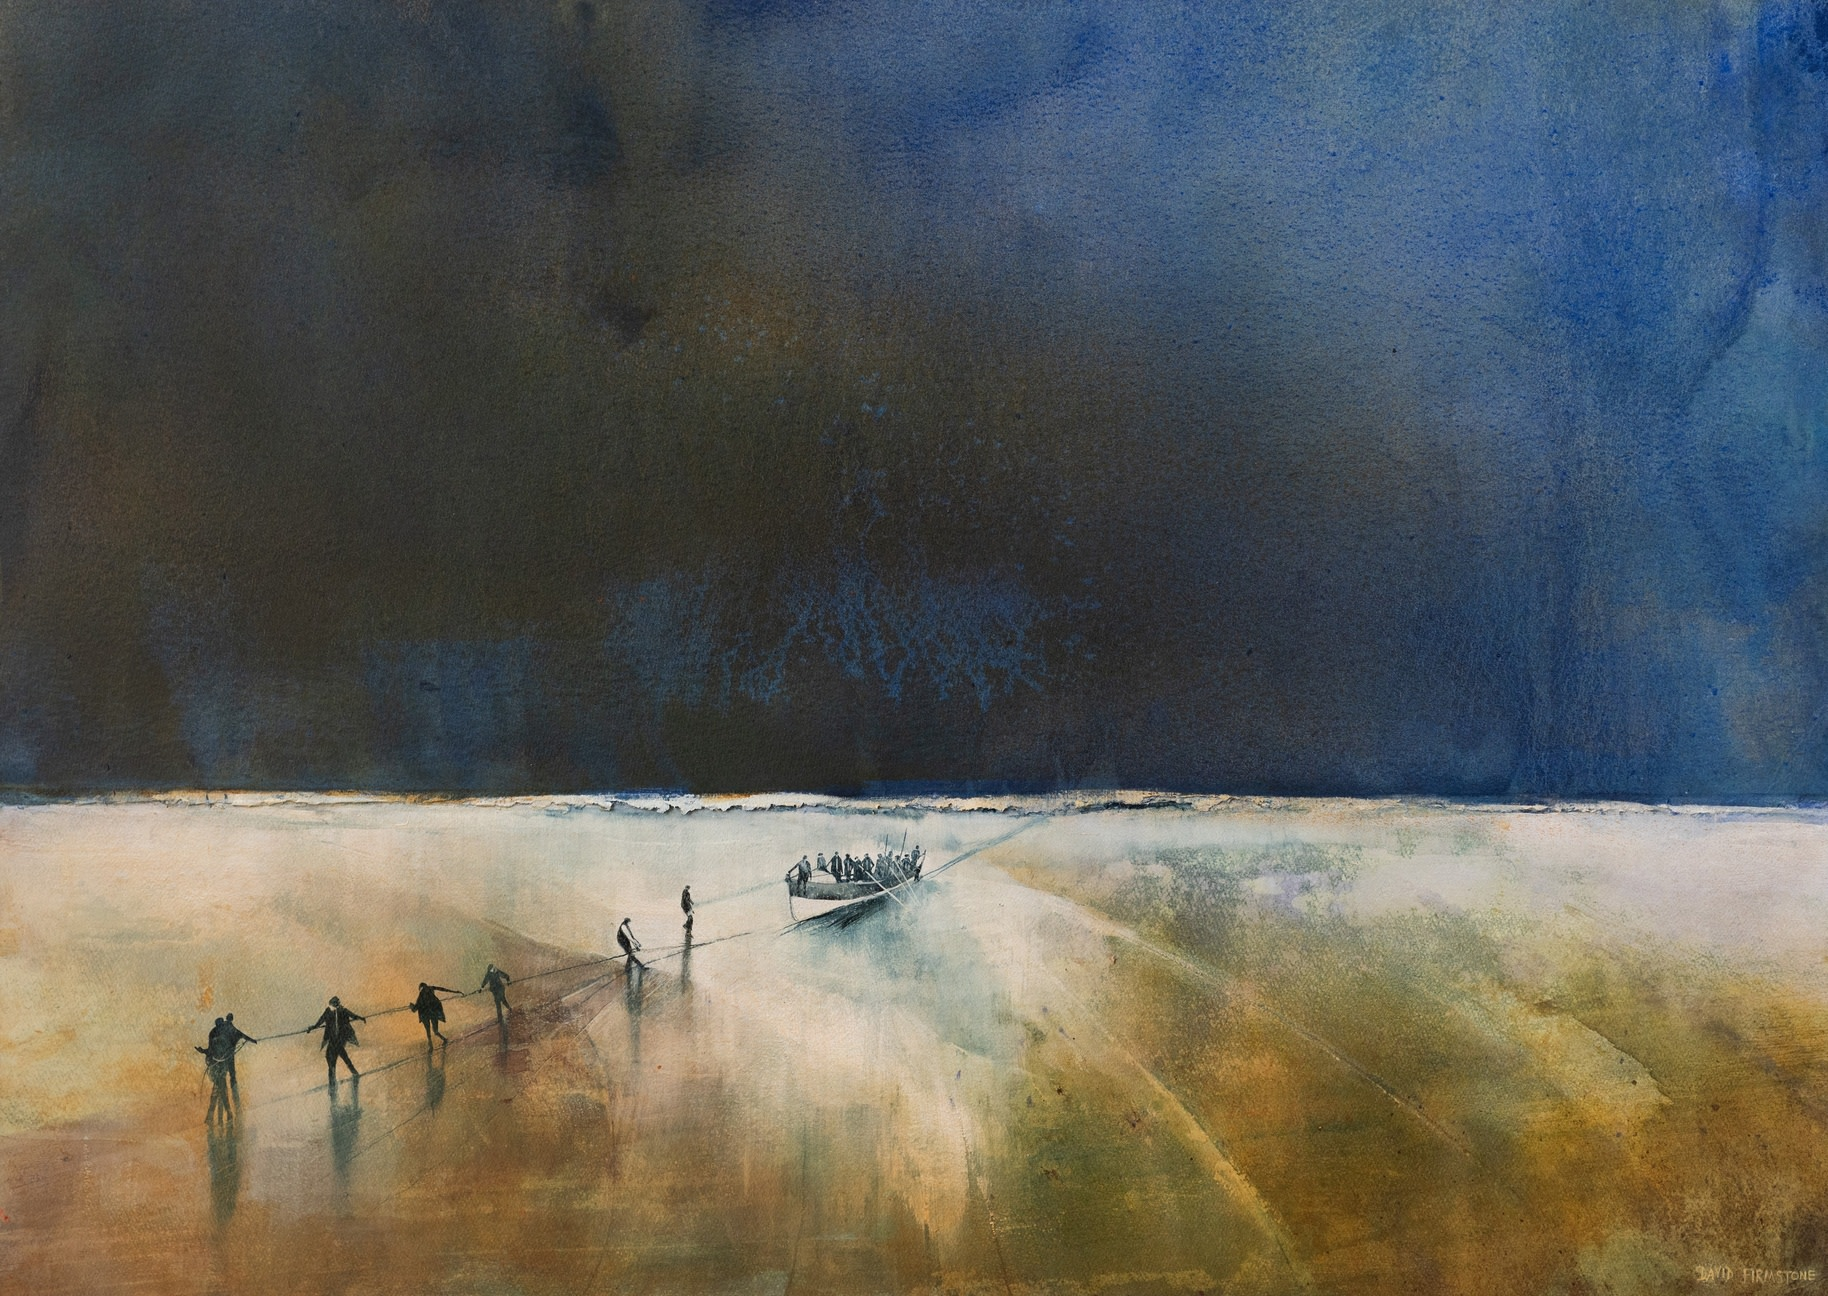 """<span class=""""link fancybox-details-link""""><a href=""""/artists/60-david-firmstone-mbe/works/11716-david-firmstone-mbe-pulling-in-the-gem-isle-of-wight/"""">View Detail Page</a></span><div class=""""artist""""><span class=""""artist""""><strong>David Firmstone MBE</strong></span></div><div class=""""title""""><em>Pulling in the Gem, Isle of Wight</em></div><div class=""""medium"""">watercolour on gesso</div><div class=""""dimensions"""">Frame: 100 x 130 cm<br /> </div><div class=""""price"""">£6,000.00</div>"""